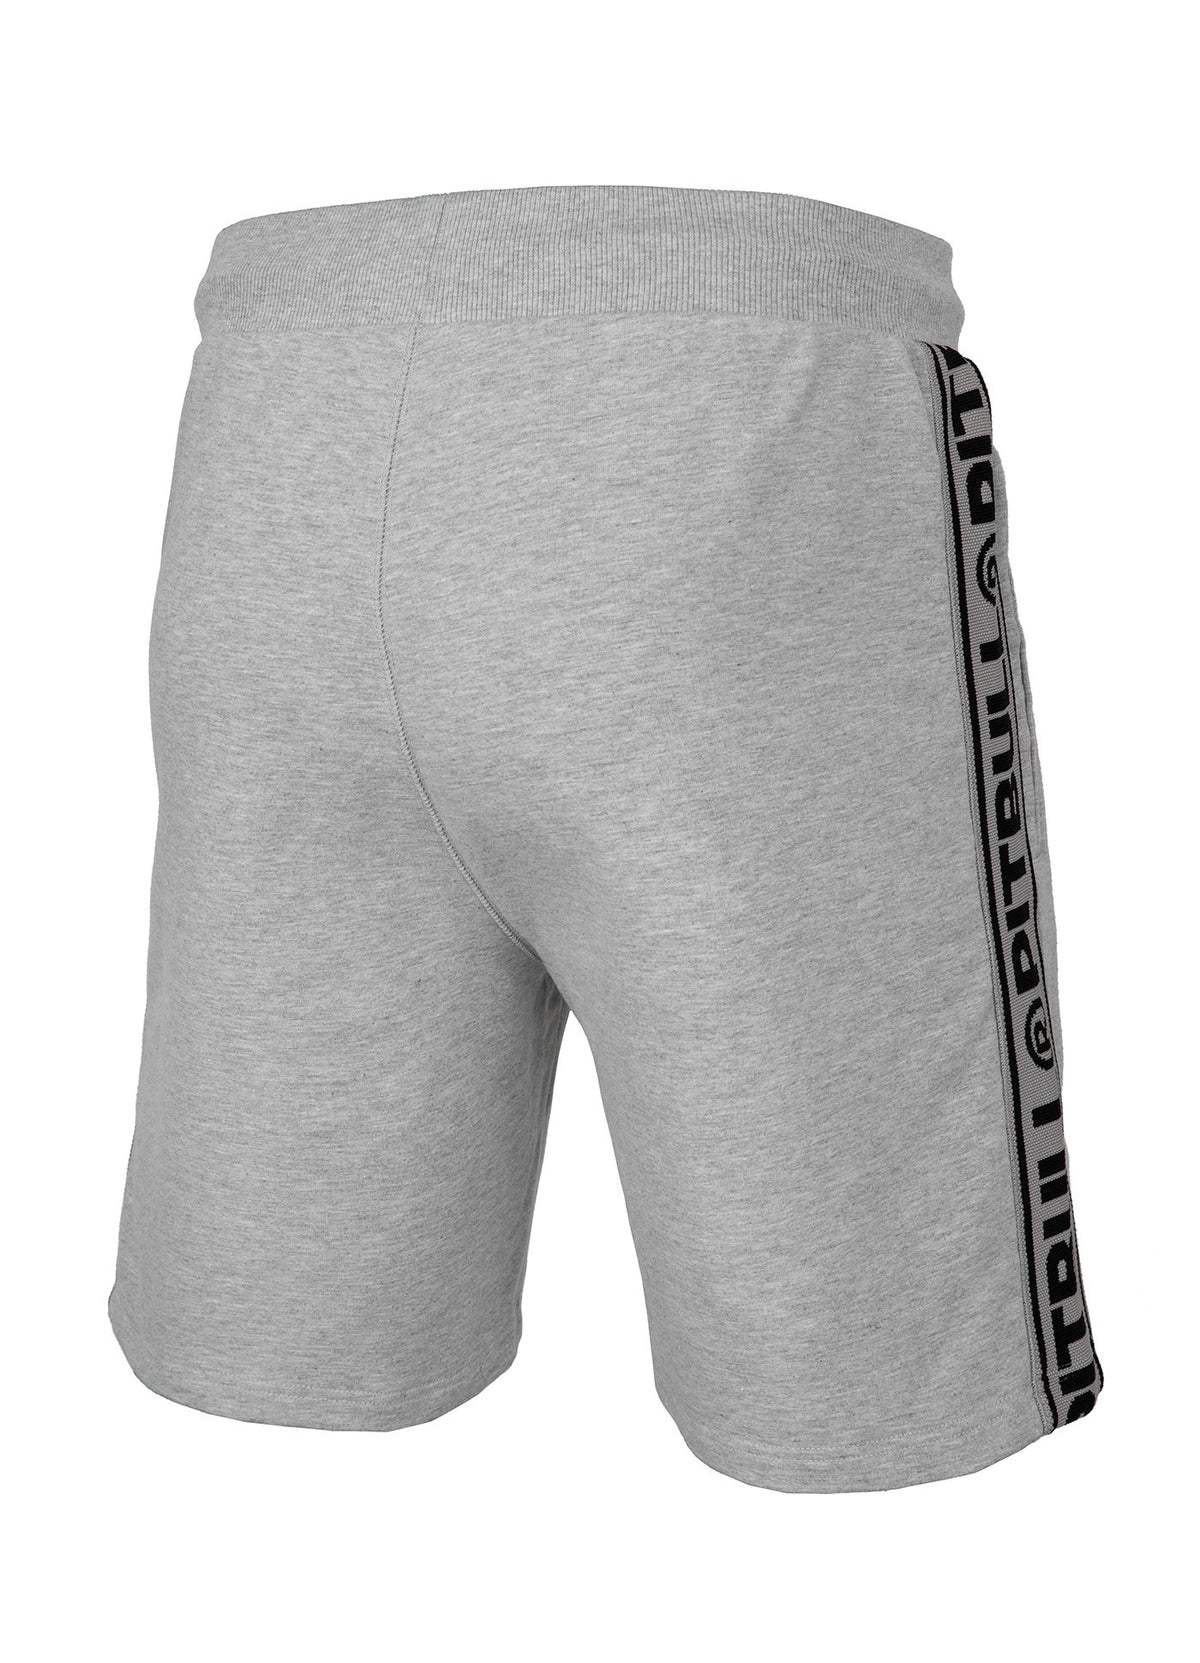 Shorts 'Small Logo' FRENCH TERRY Grey - Pitbull West Coast U.S.A.